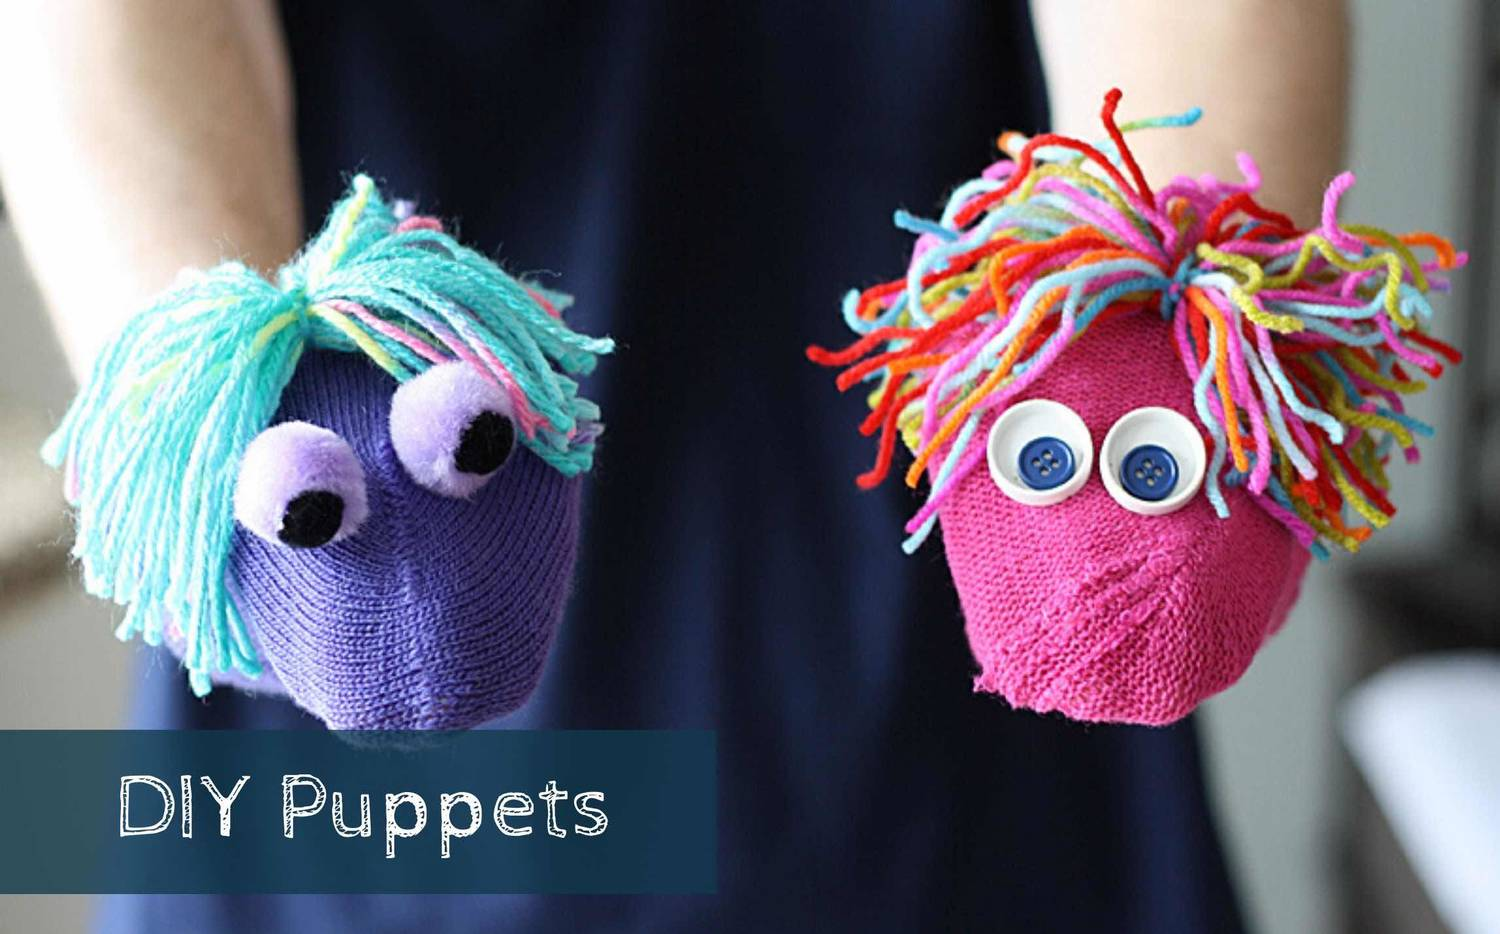 Make Your Own Puppets And Put On A Show